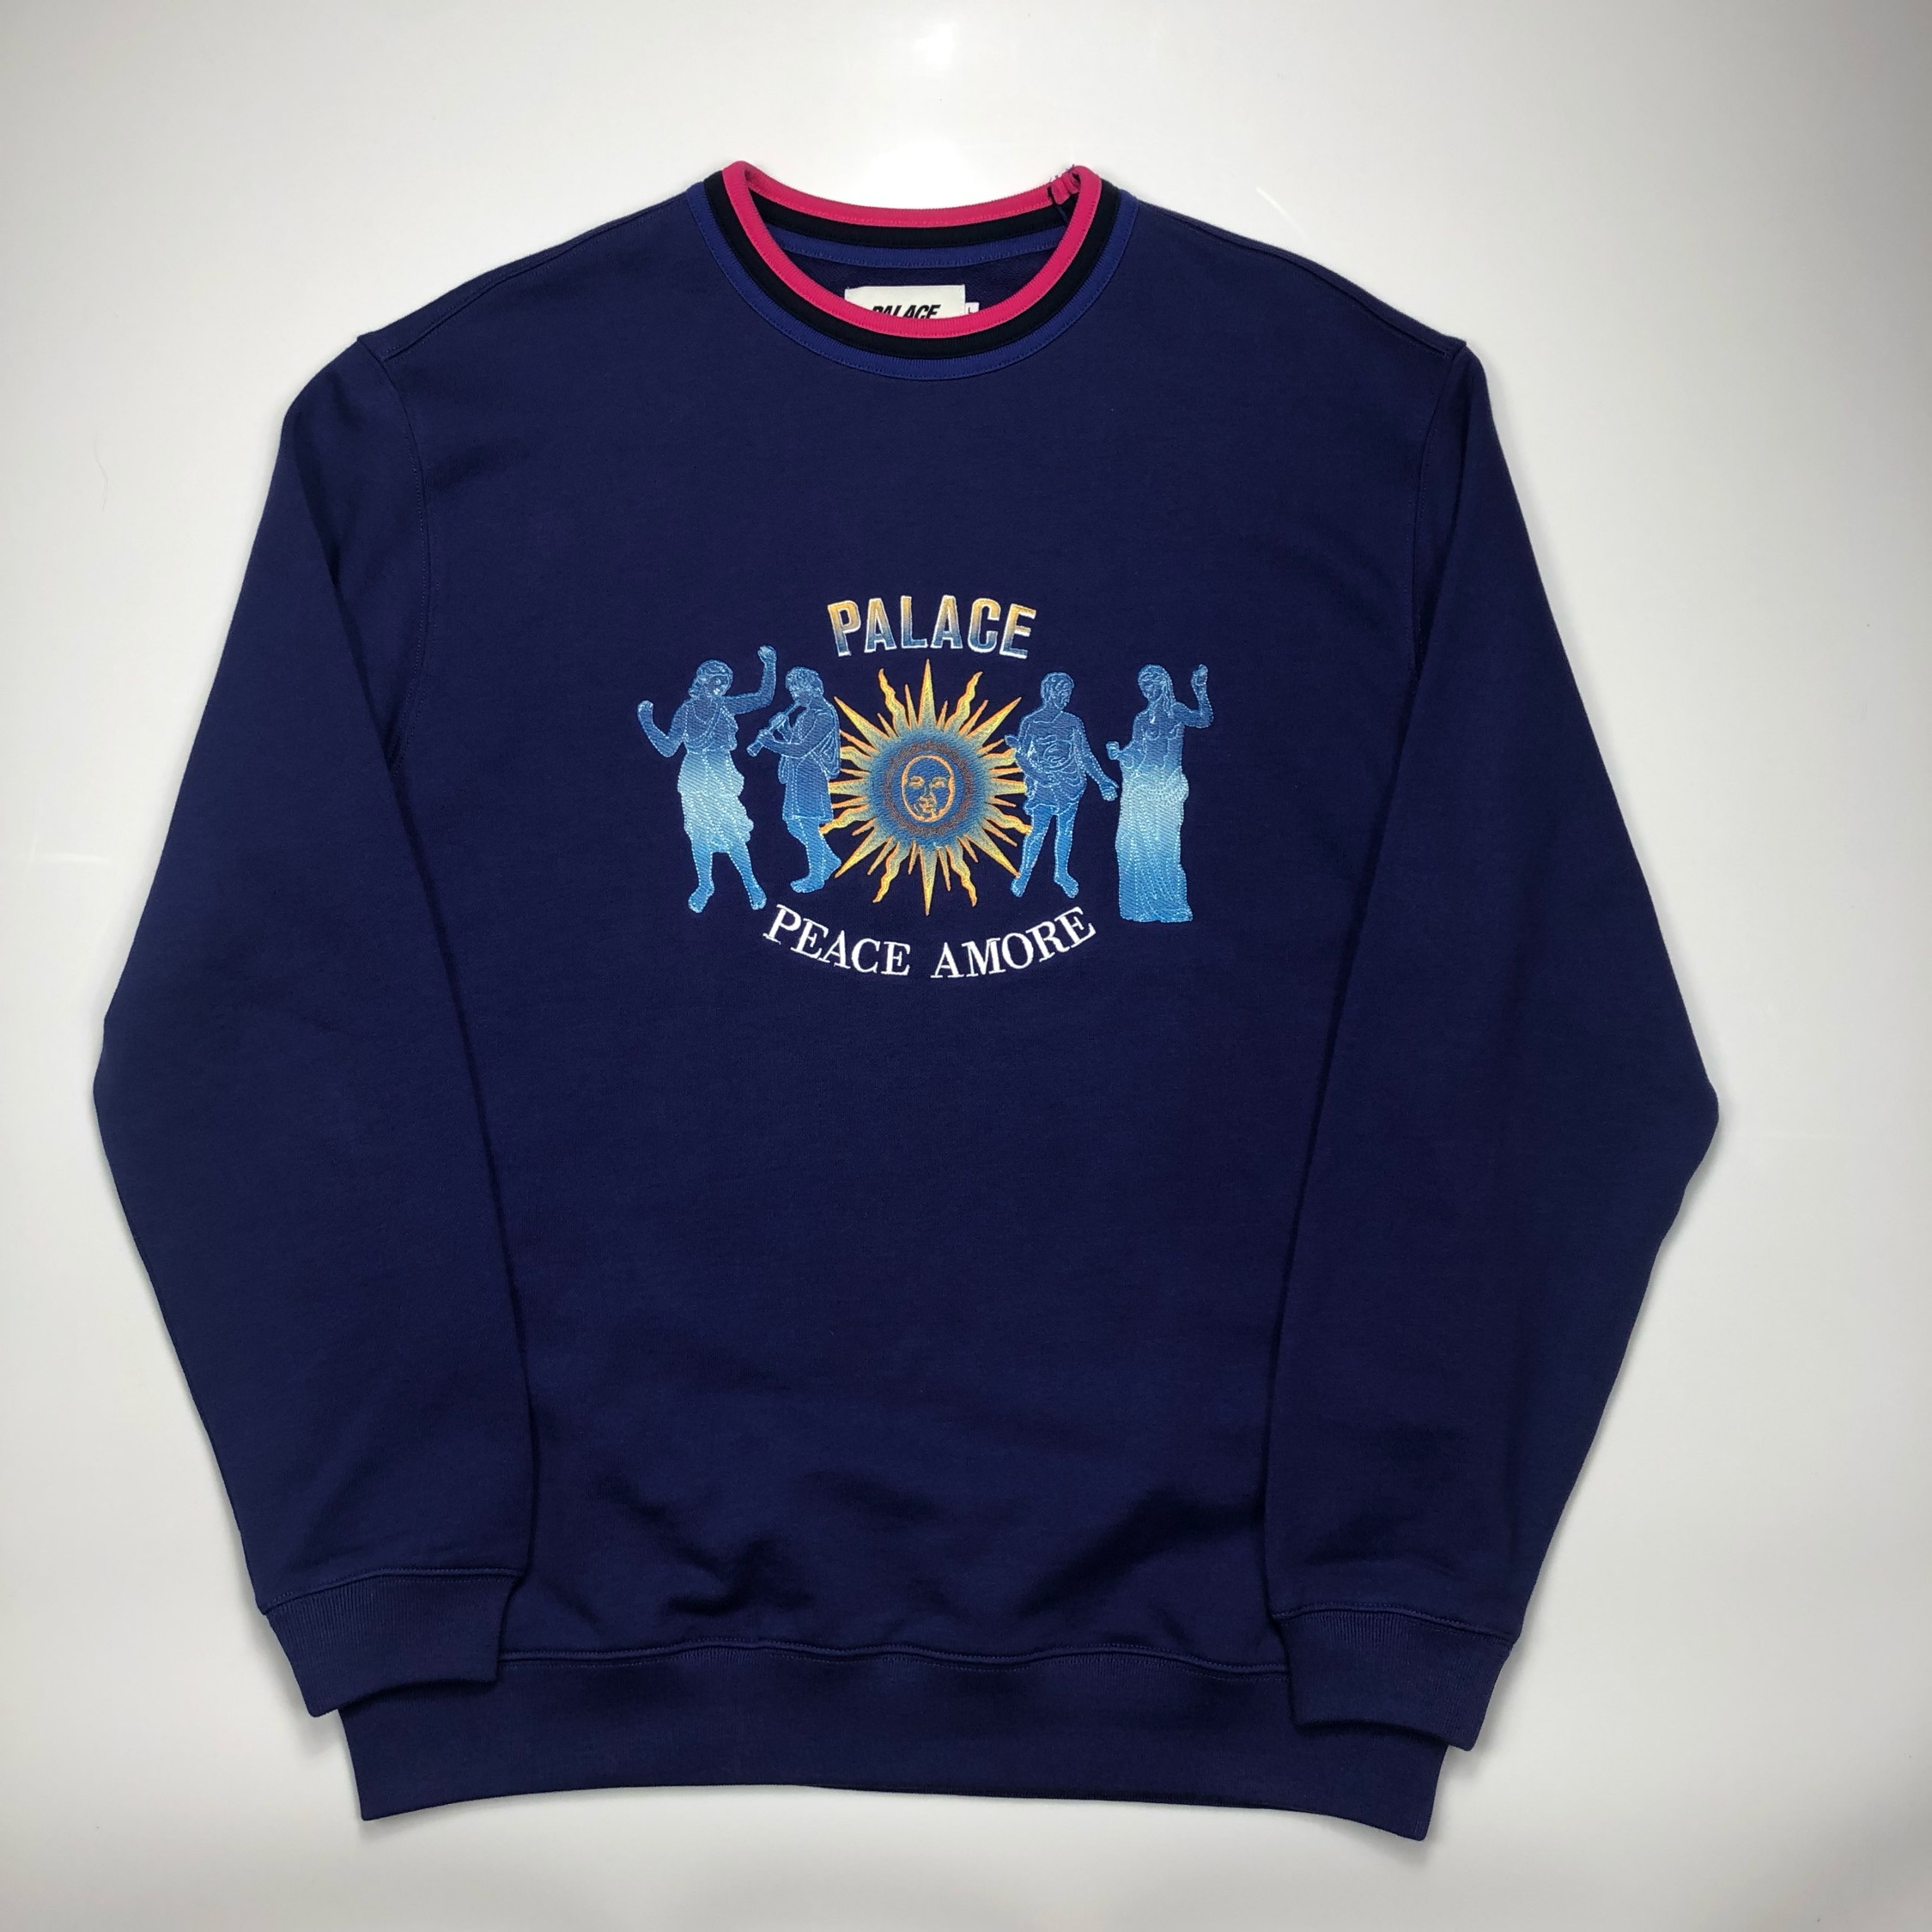 Palace Peace Amore Embroidered Crewneck Sweatshirt